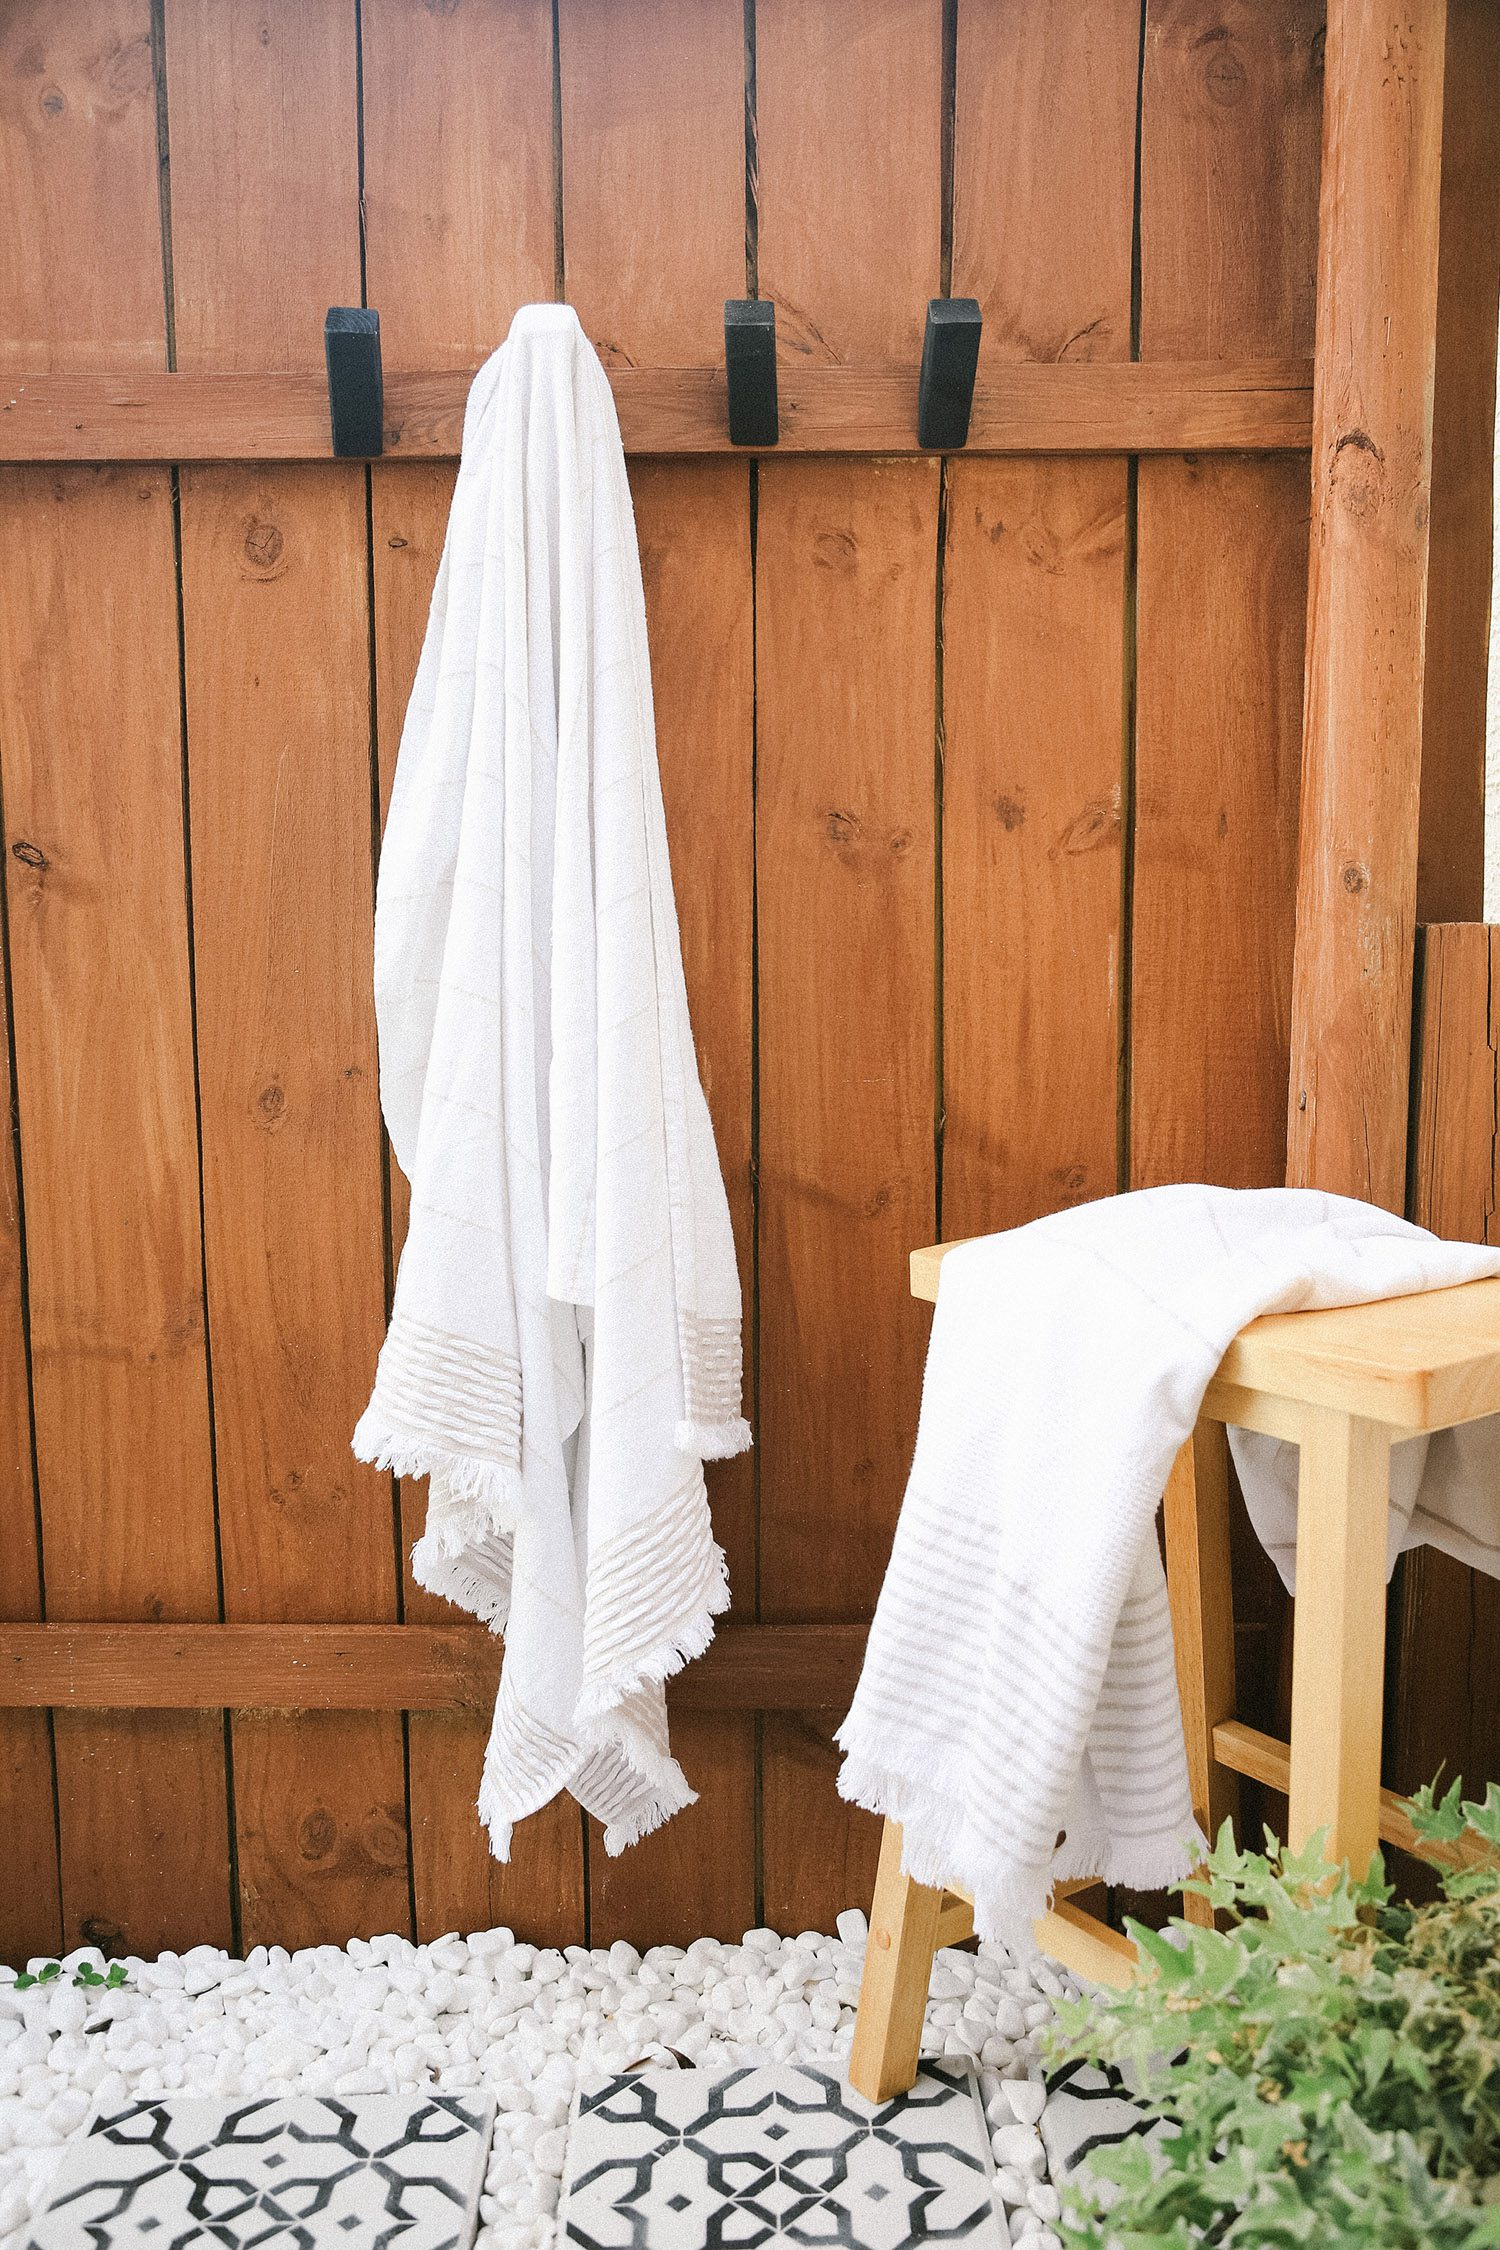 DIY Outdoor Shower Ideas on a Budget for the Ultimate Backyard Oasis   DIY Outdoor Shower by popular Florida DIY blog, Fresh Mommy Blog: image of a DIY outdoor shower with white towels hanging on black wooden towel hooks.